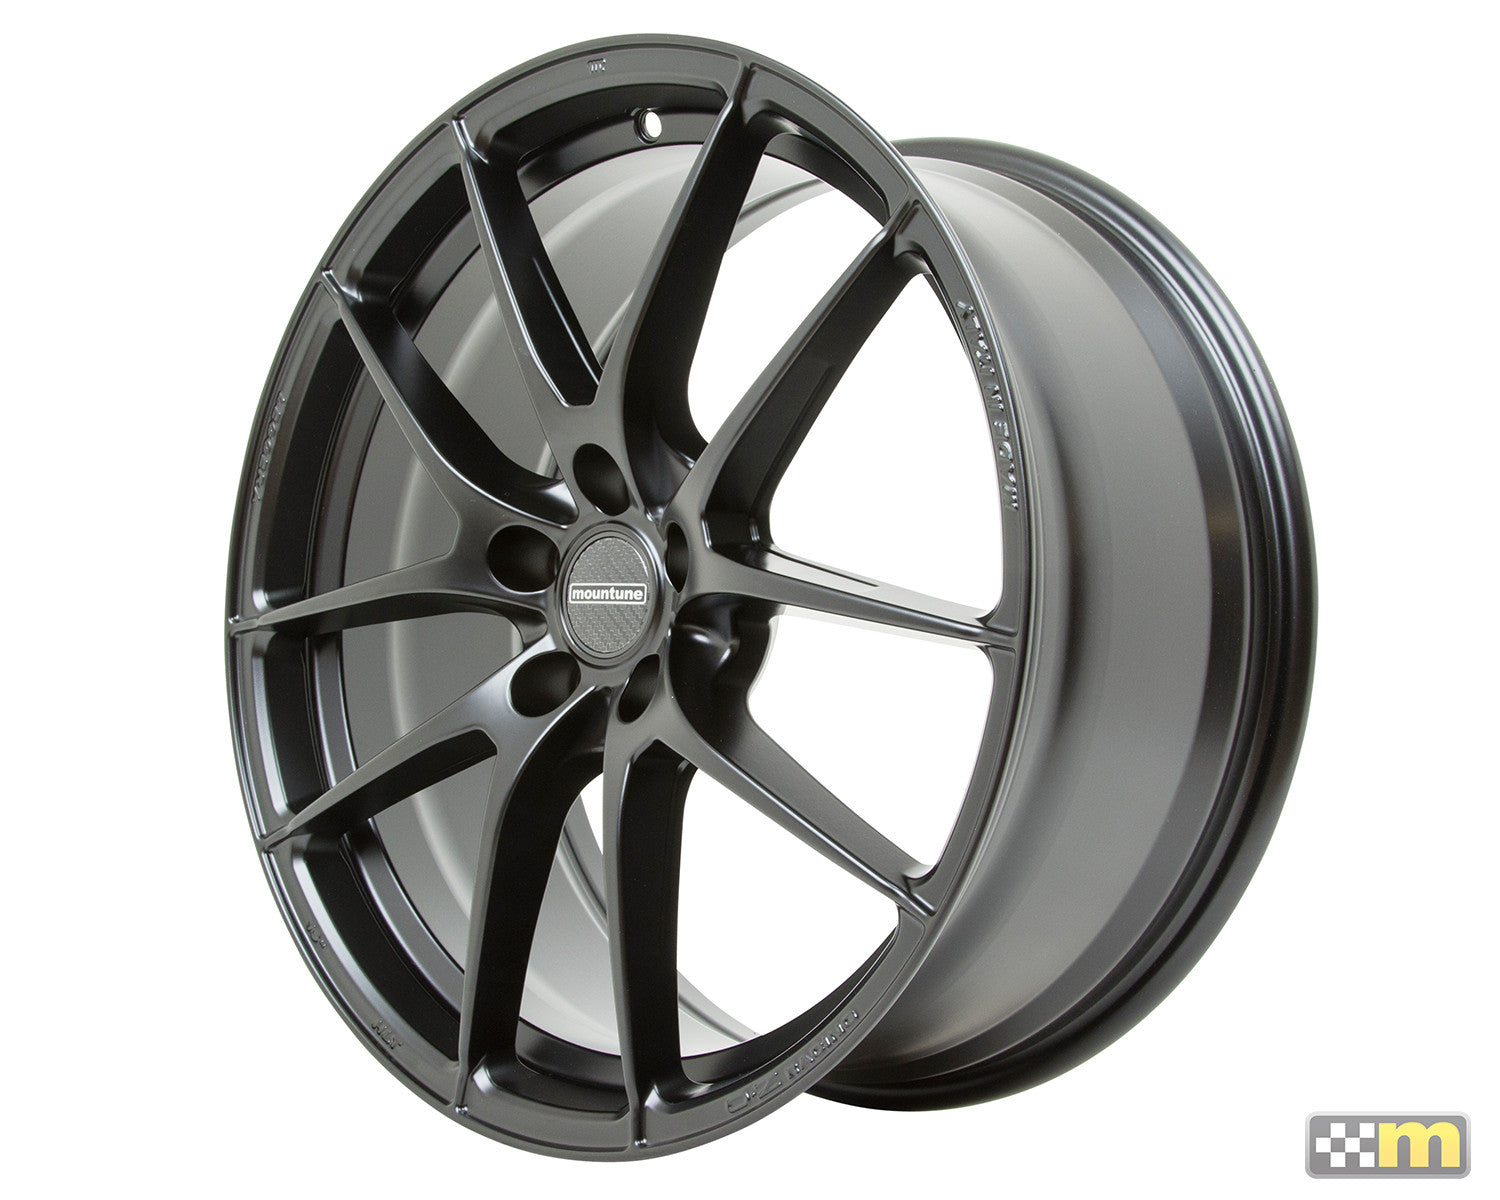 "OZ Racing Leggera HLT ""m-Spec"" 8.5x19"" wheel - mountune® - 1"